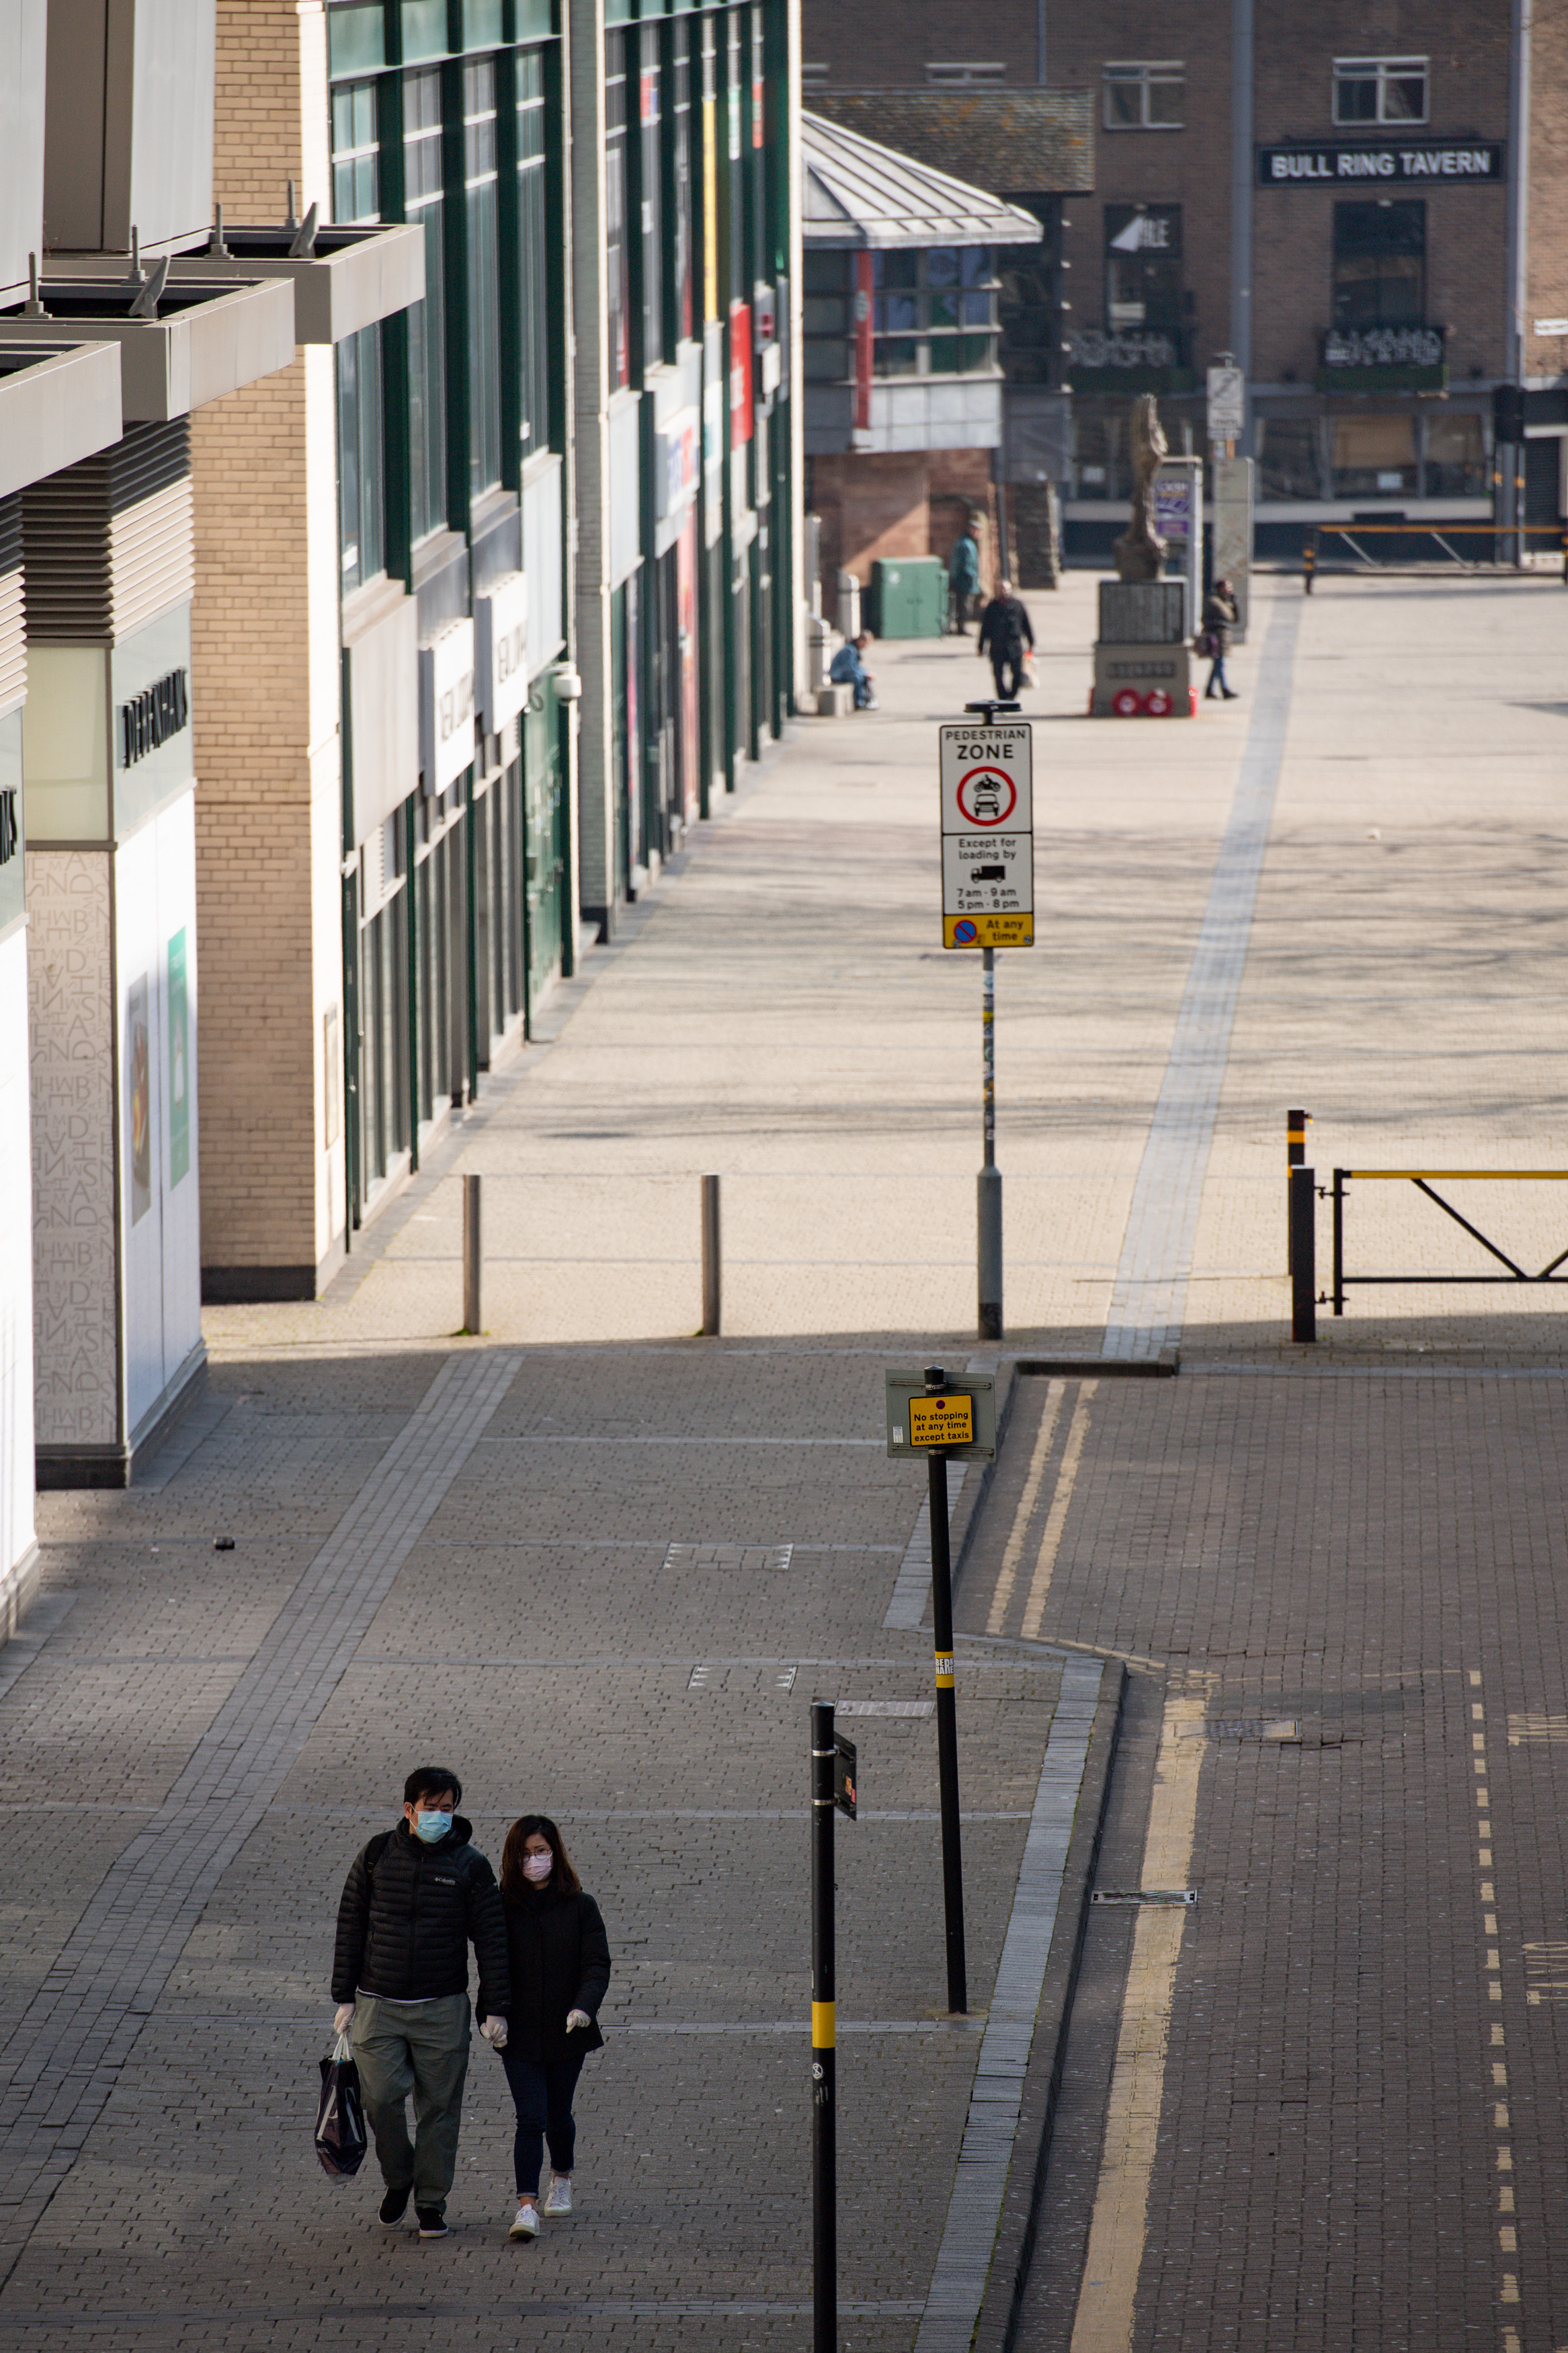 A couple wearing protevtive equipment walk by the Bullring in Birmingham, the day after Prime Minister Boris Johnson put the UK in lockdown to help curb the spread of the coronavirus.